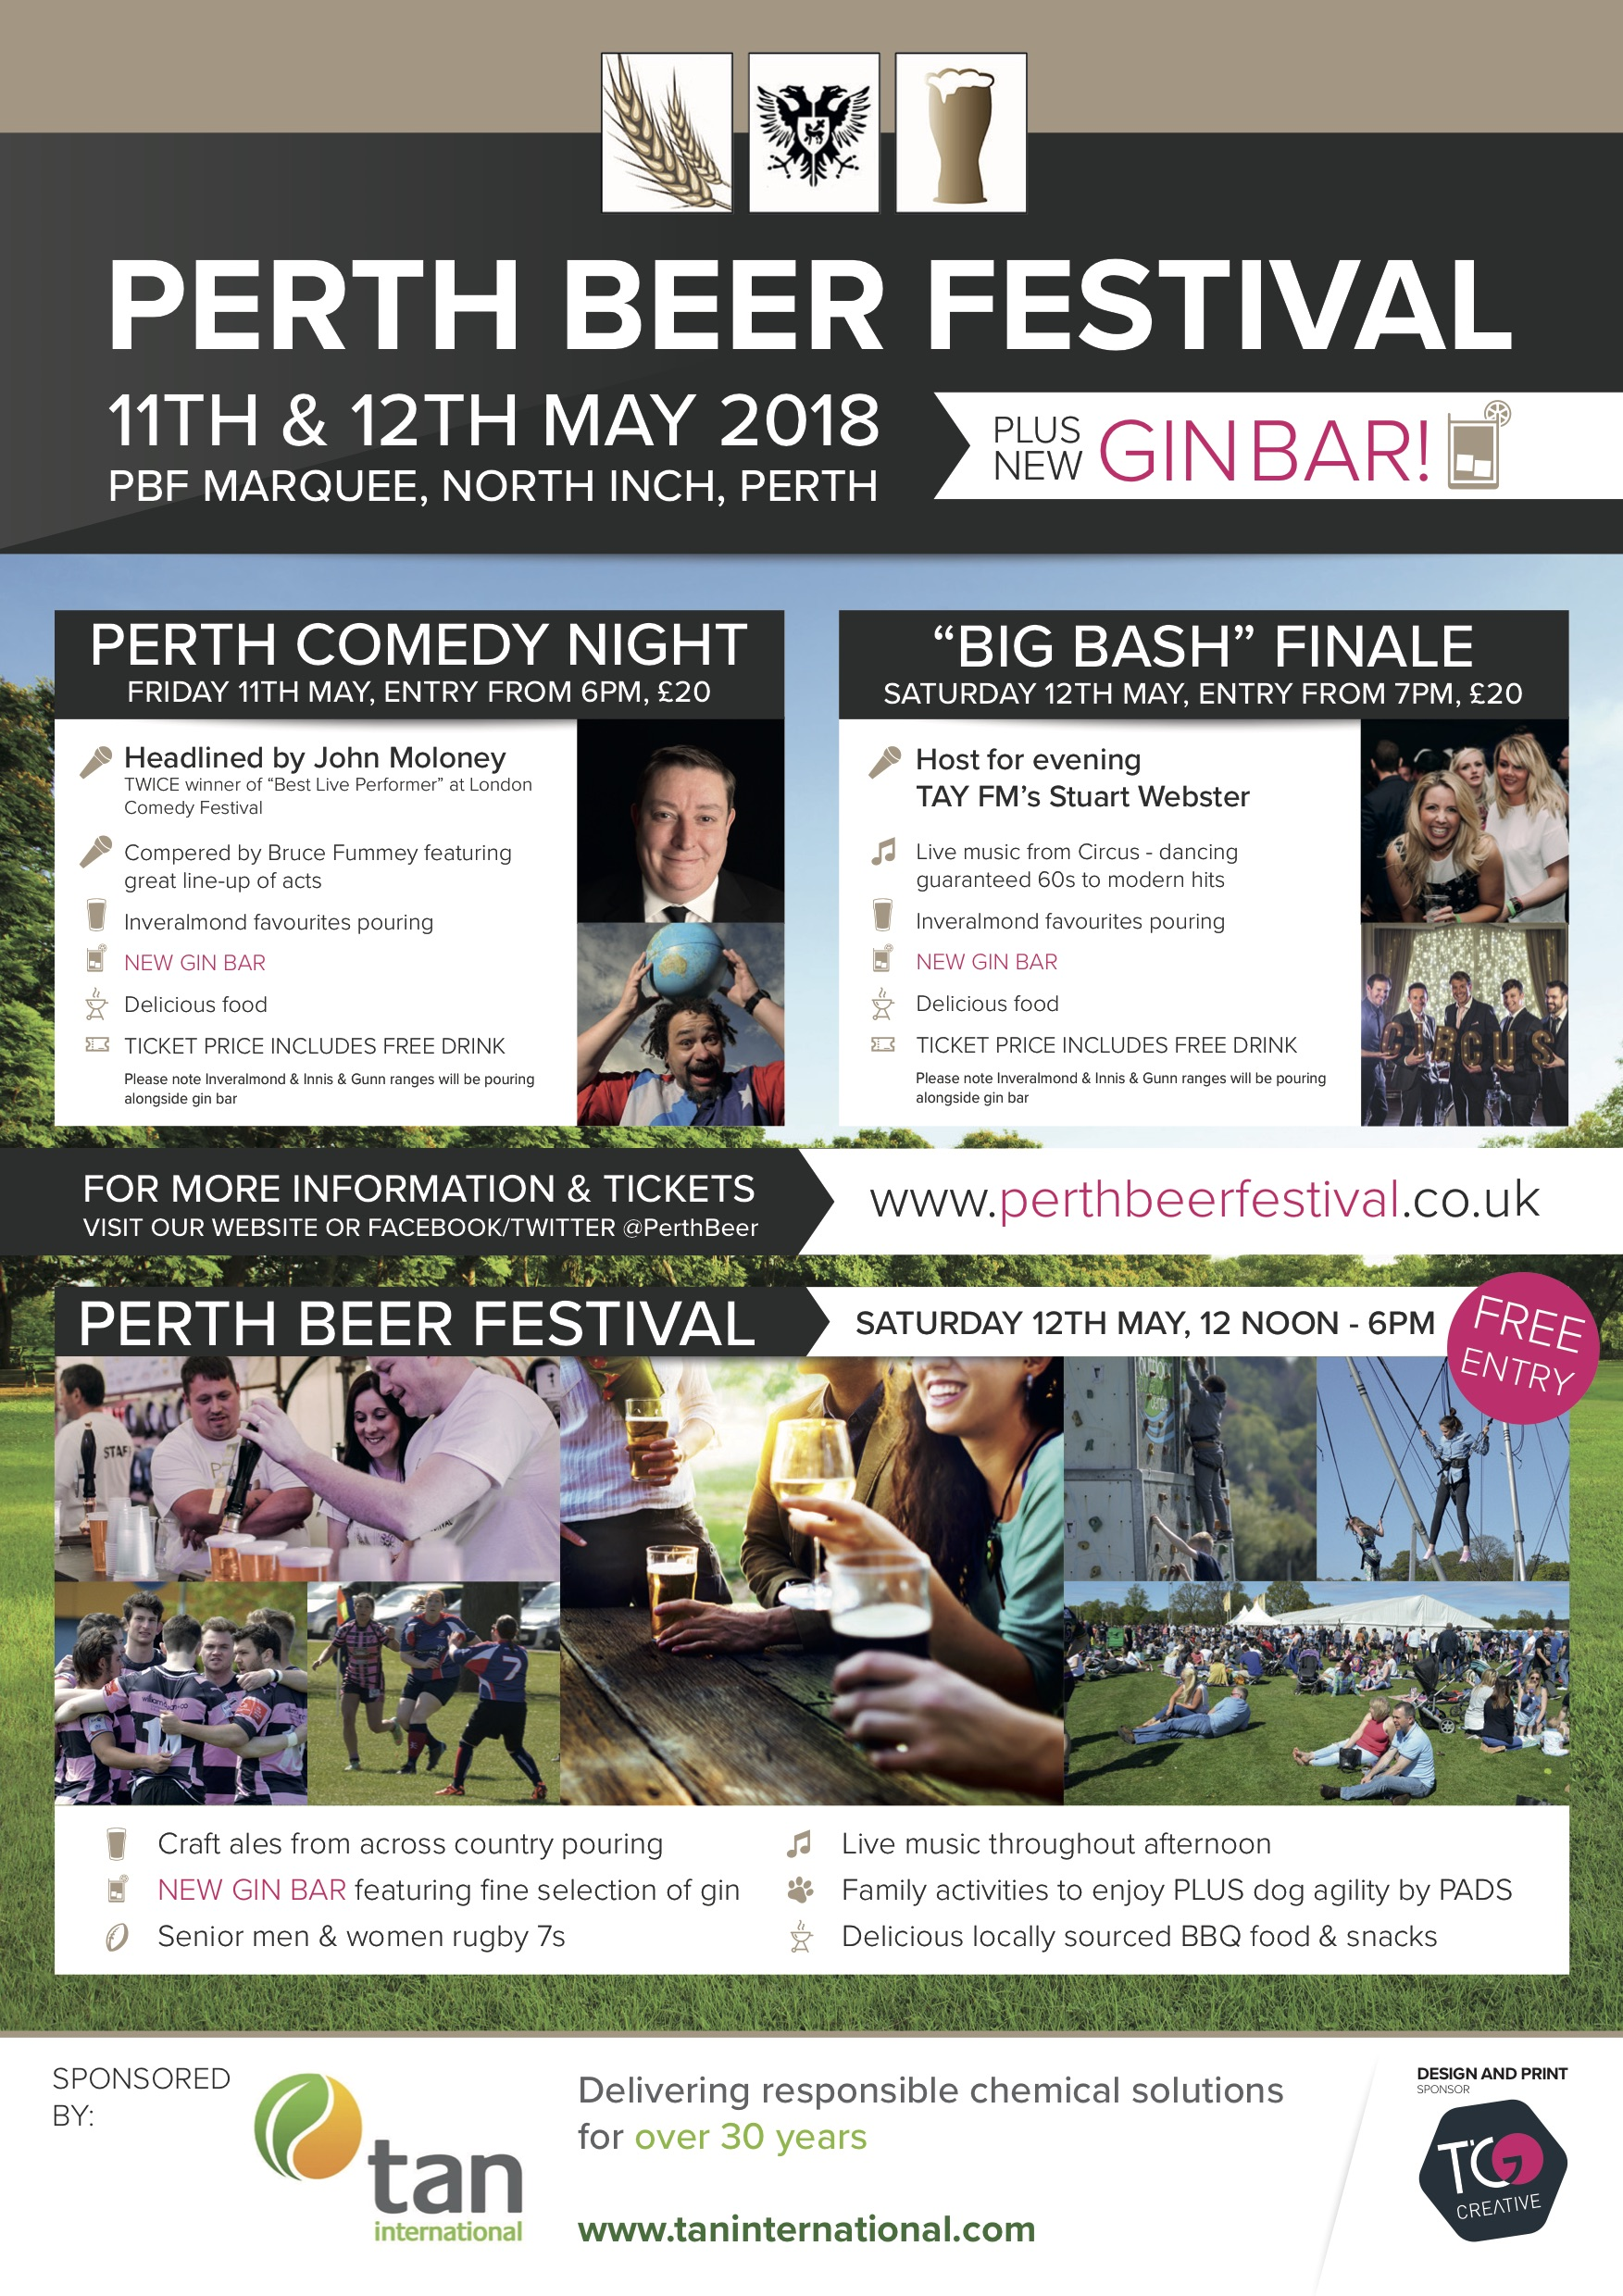 Perth Beer Festival 2018 Weekend Line-up